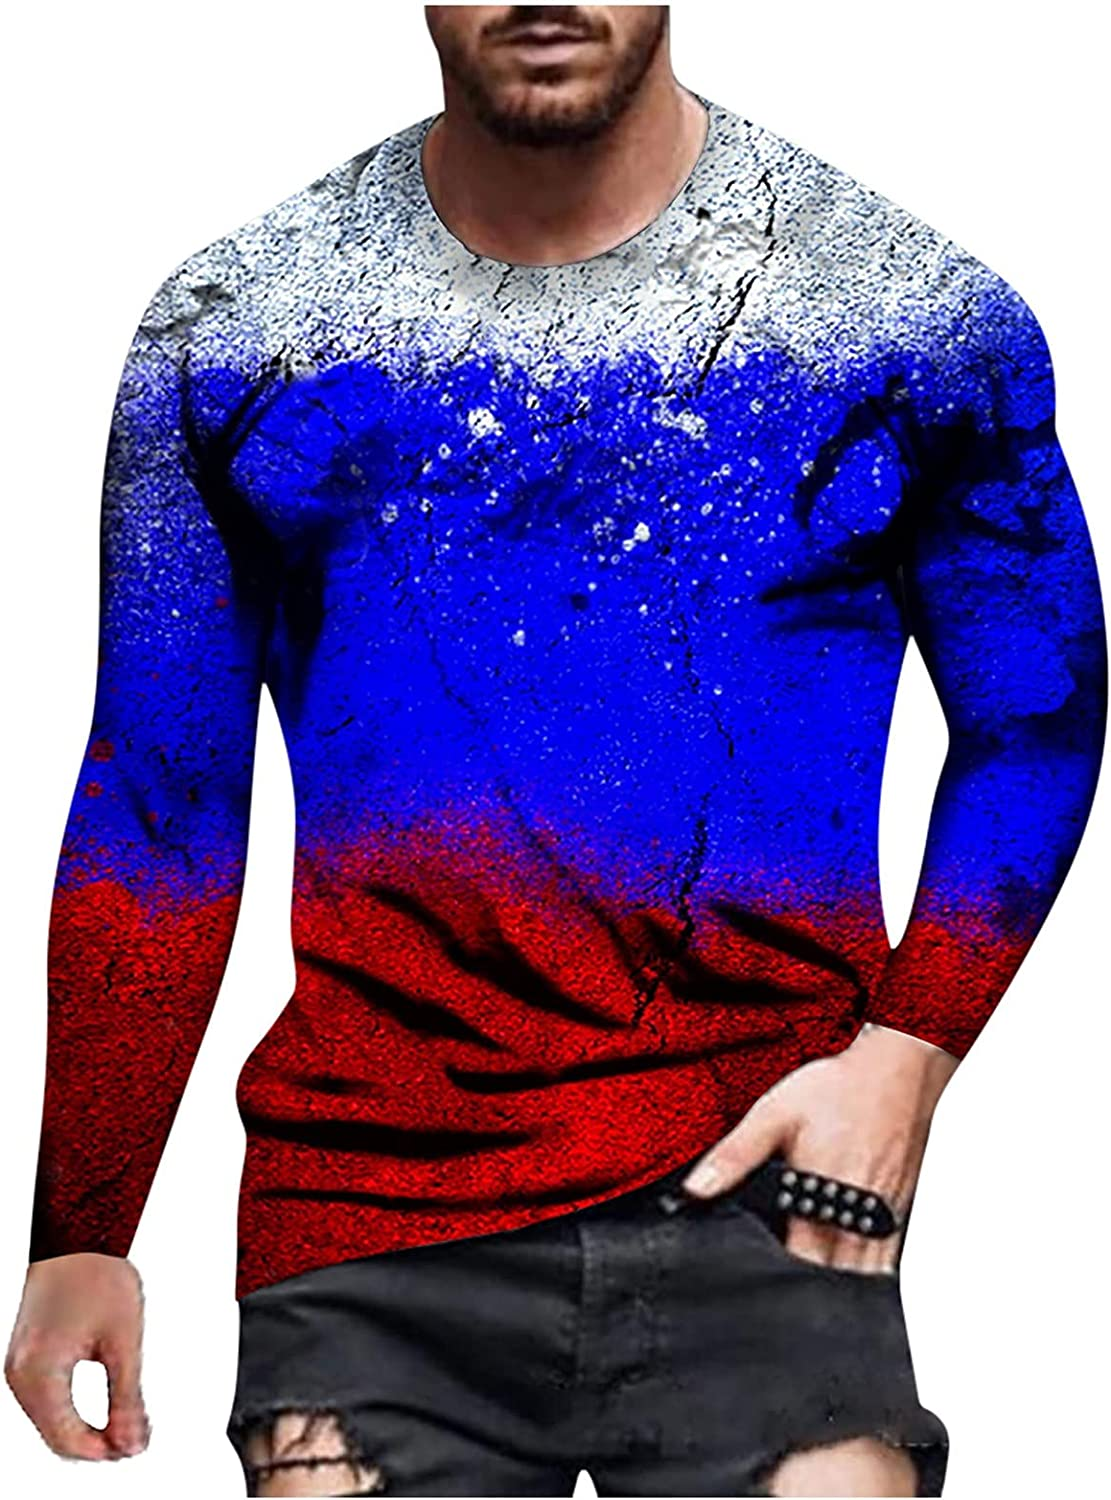 Huangse Men's Slim Fit Long Sleeve Round Collar T-Shirt Casual Print Contrast Color Athletic Tee Tops